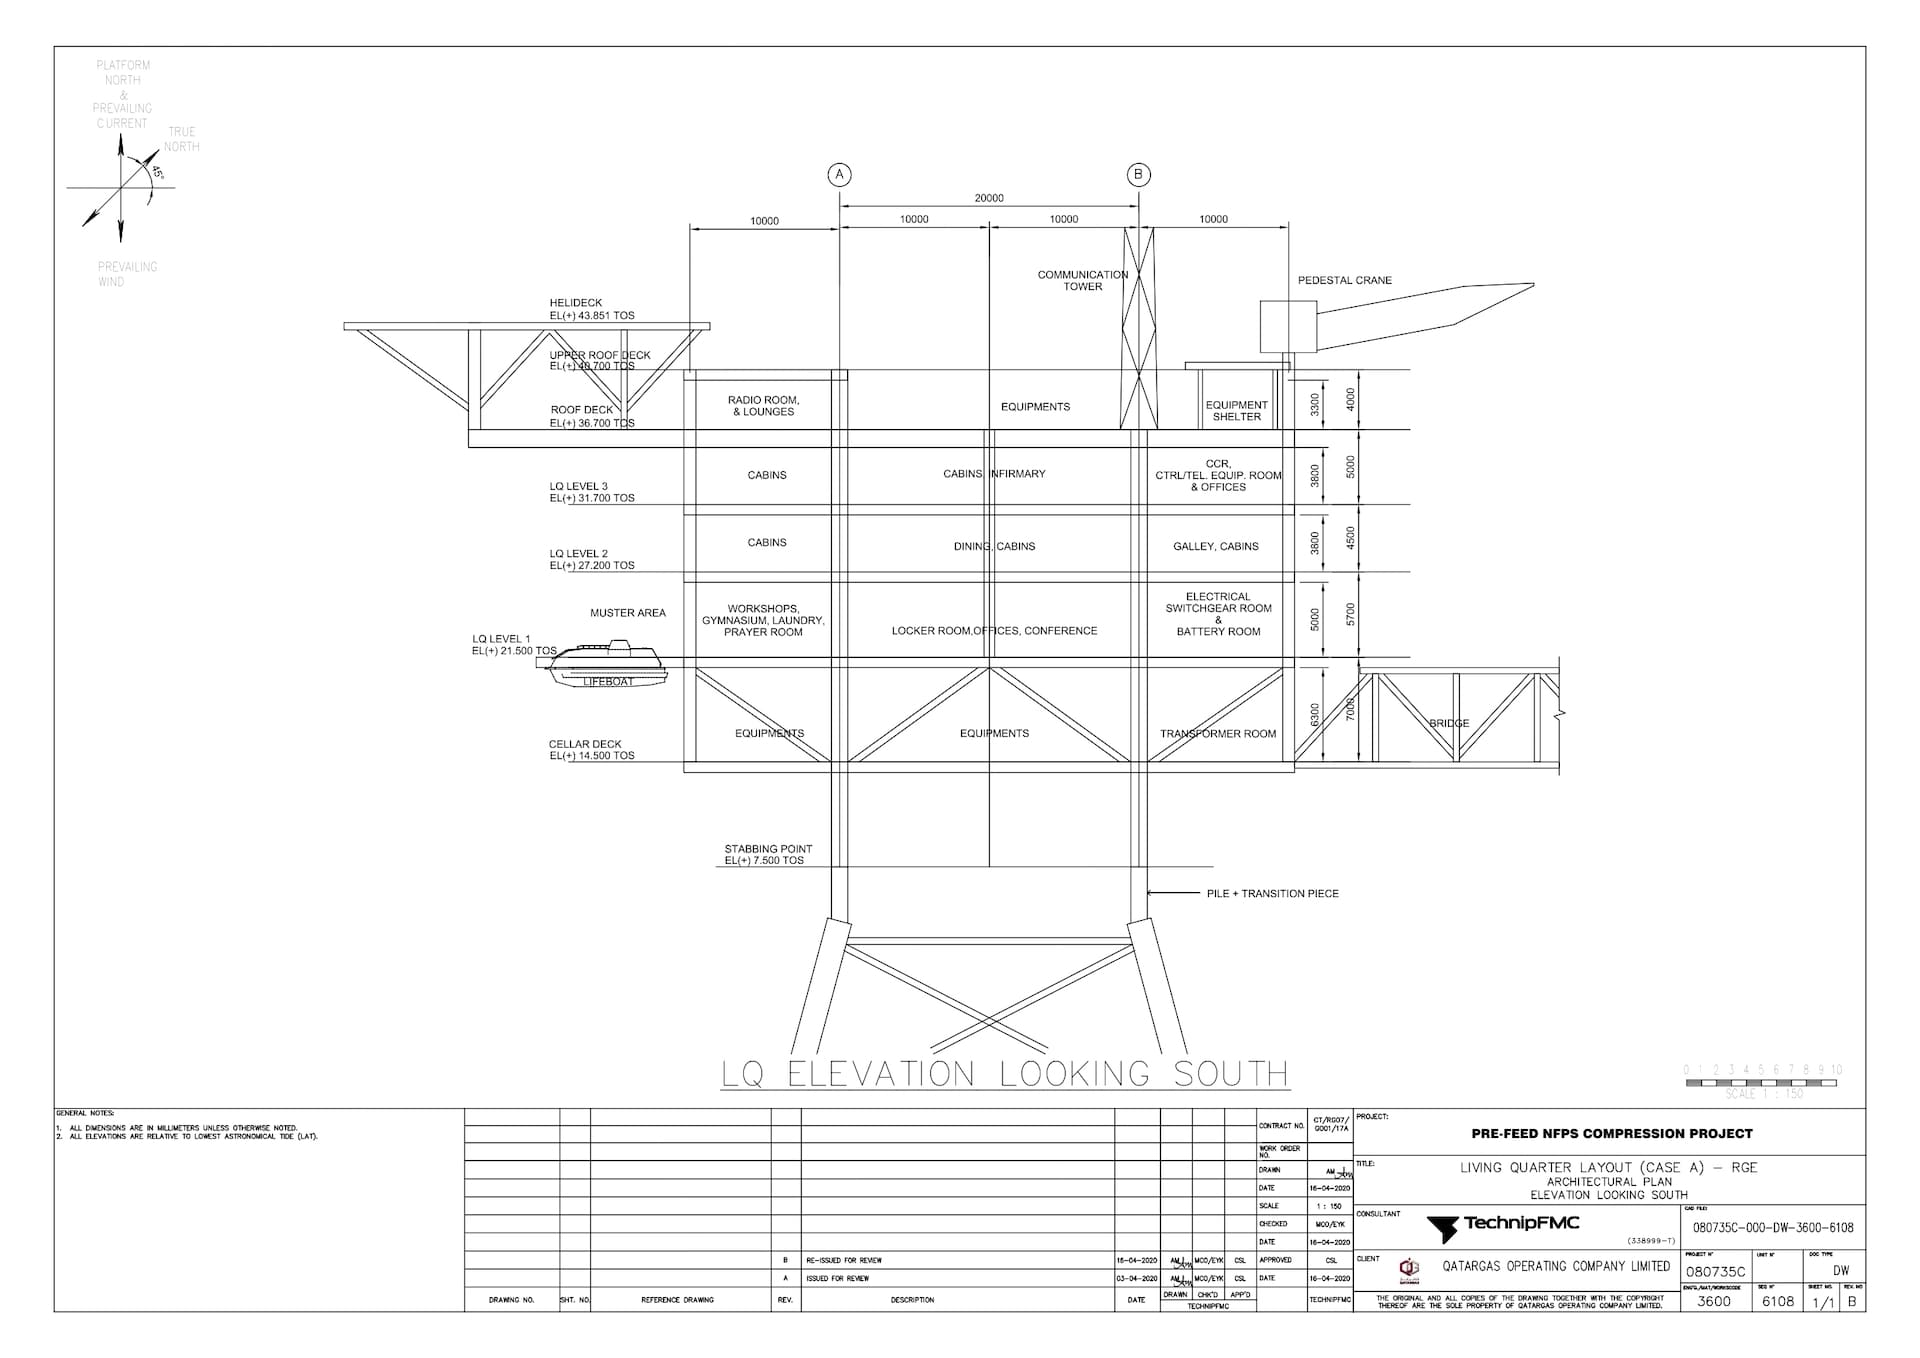 PRE-FEED-NFPS-080735C-000-DW-3600-6108_Rev B LQ Layout (Case A) - RGE - Architectural Plan - Elevation Looking South_page-0001 (1)